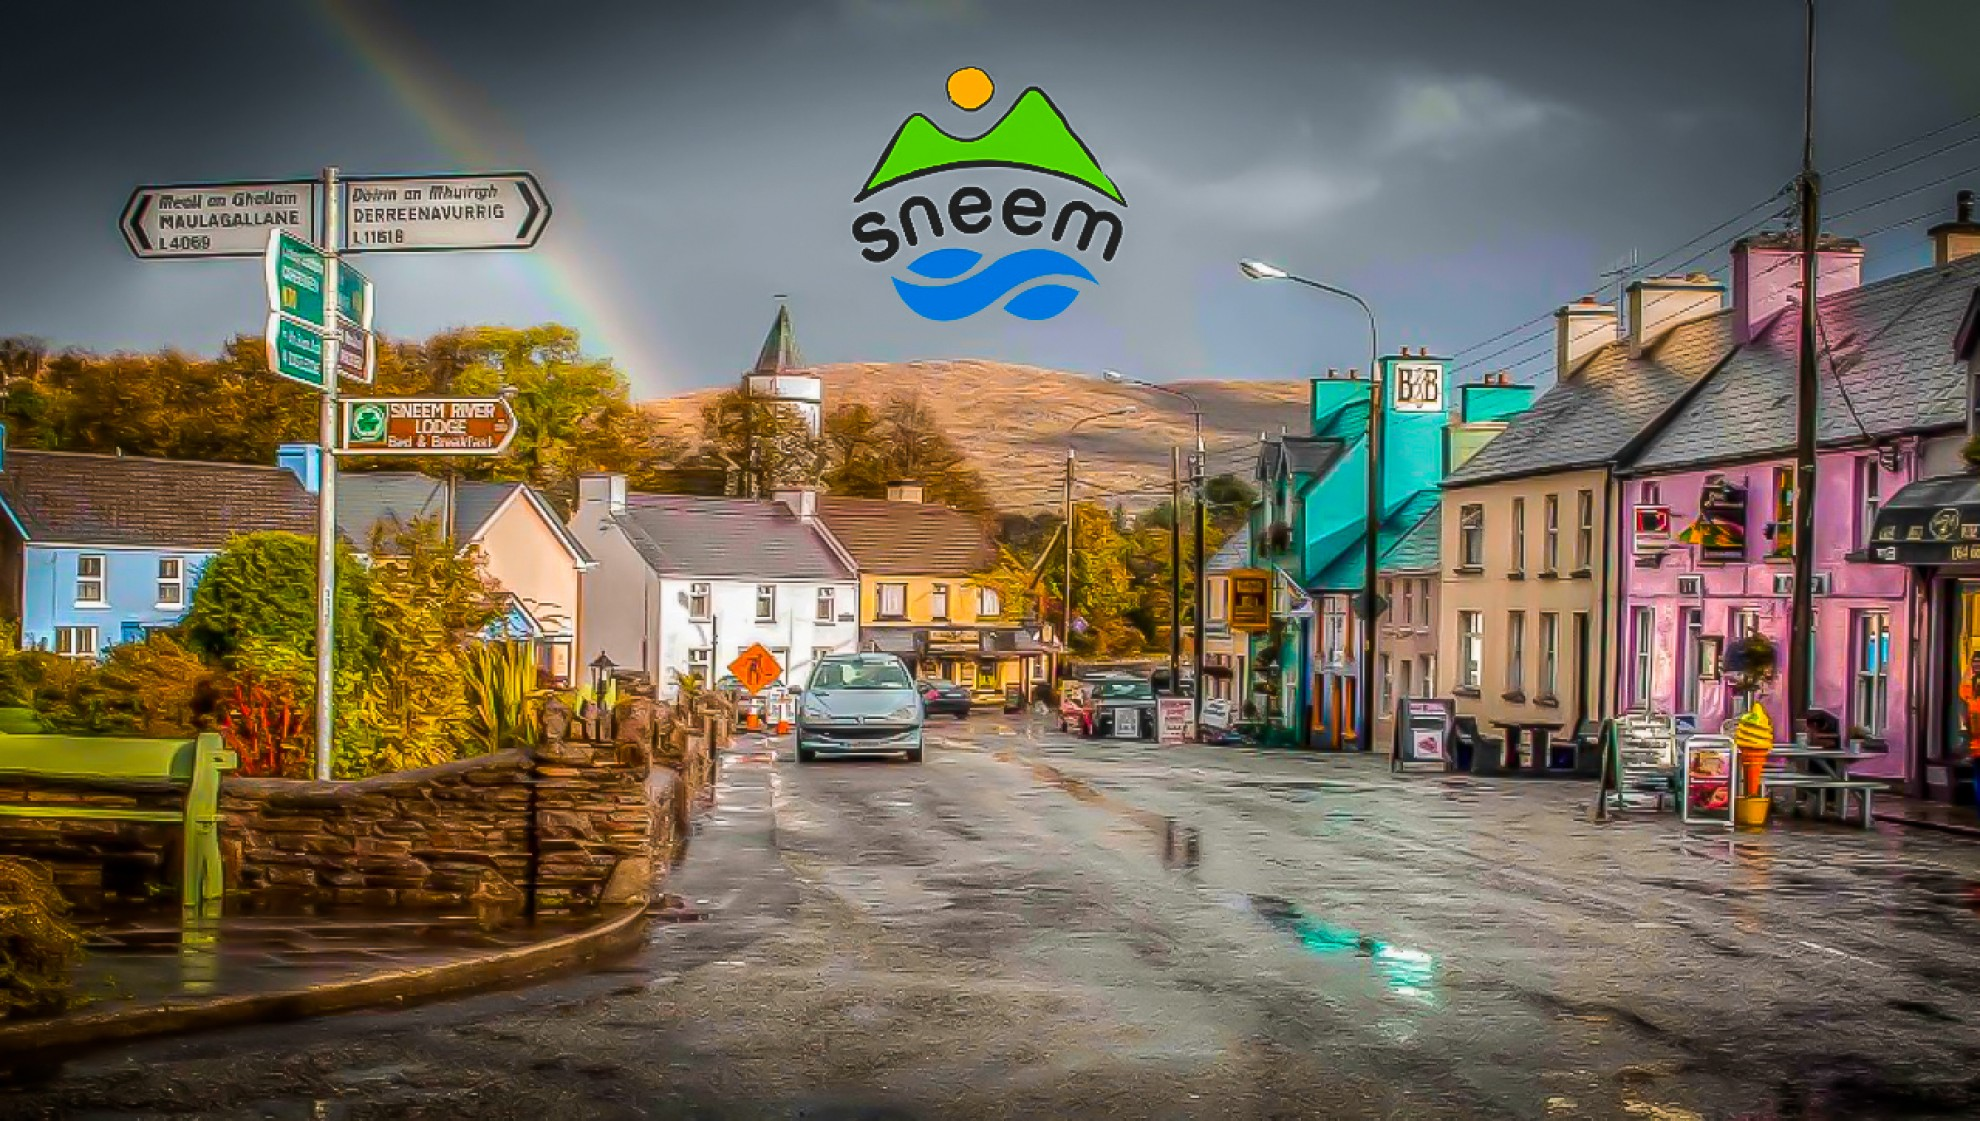 North Square Sneem